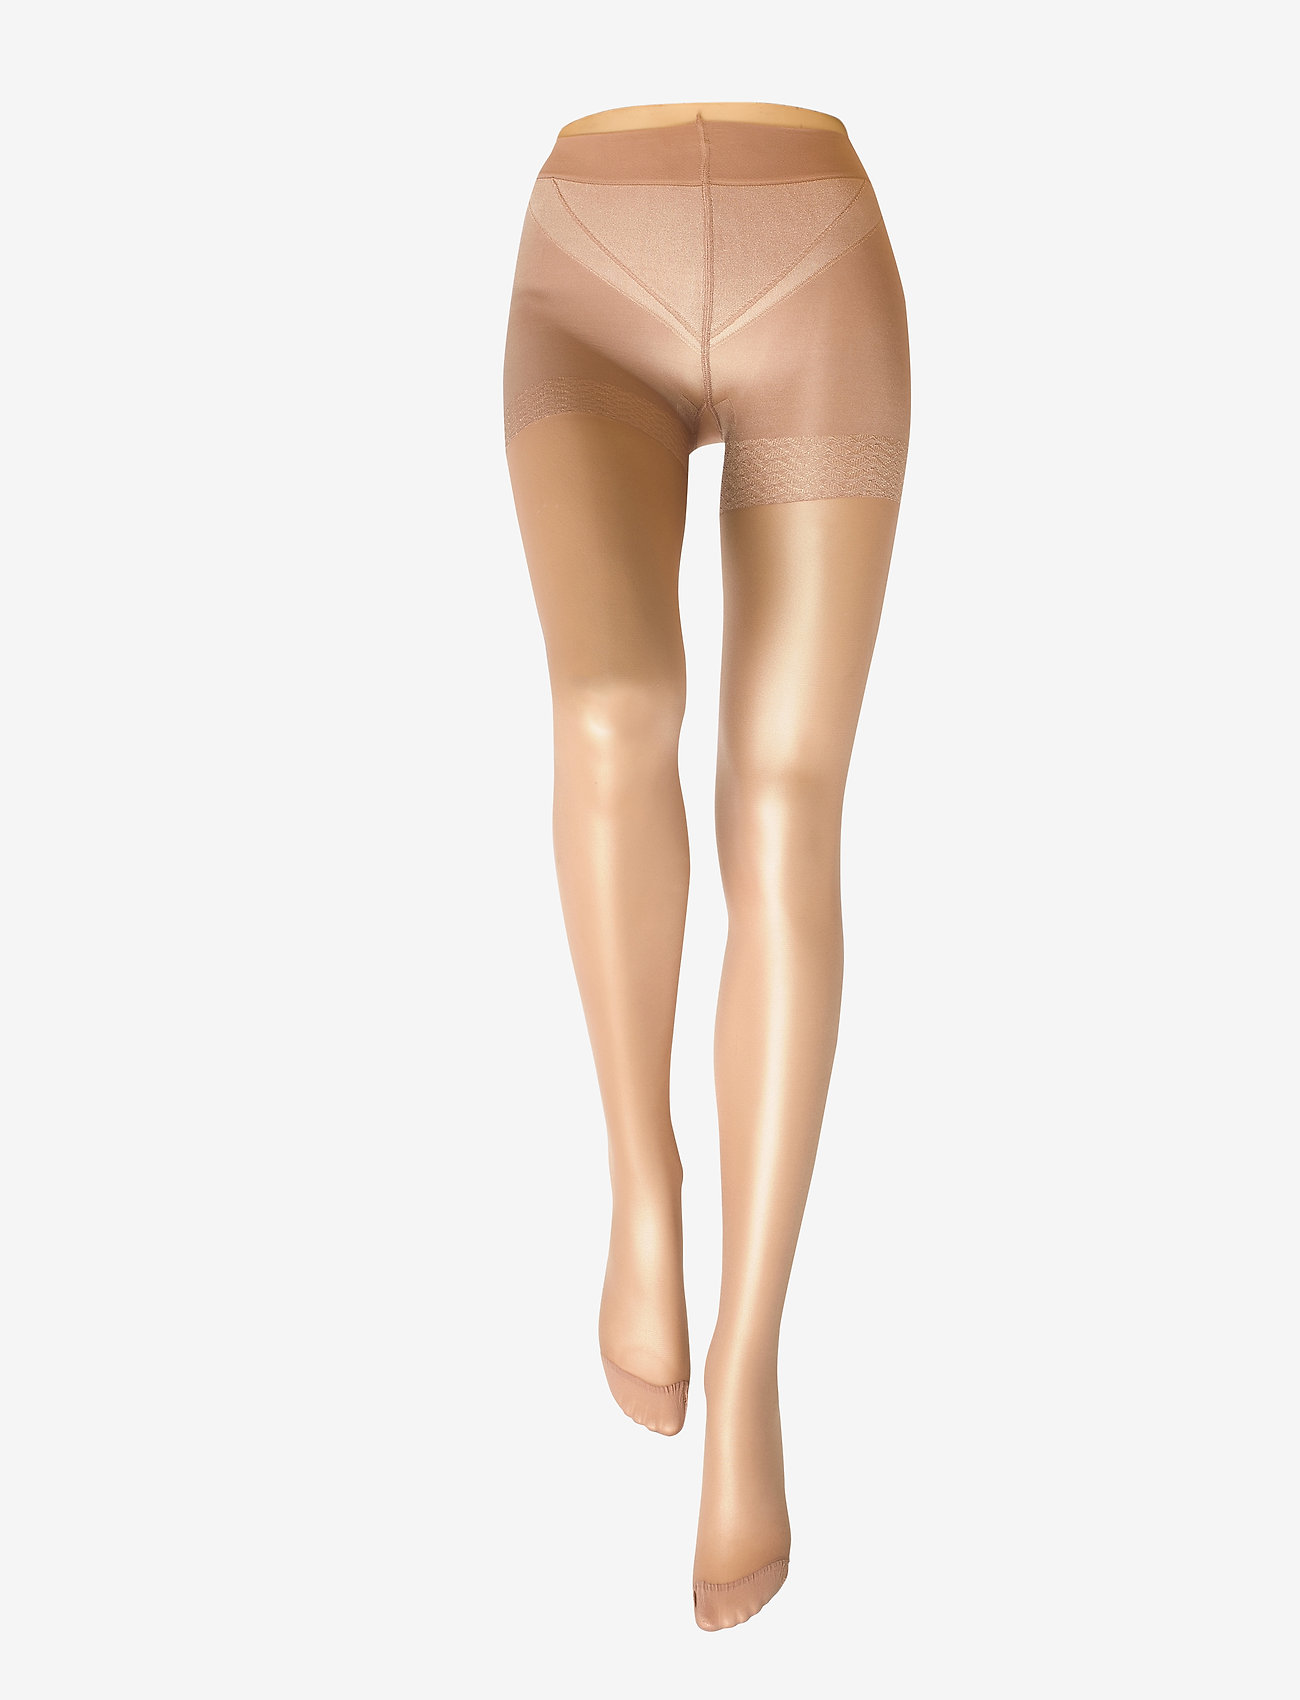 Lindex - Tights 40den firm shaping - panty's - light beige - 1